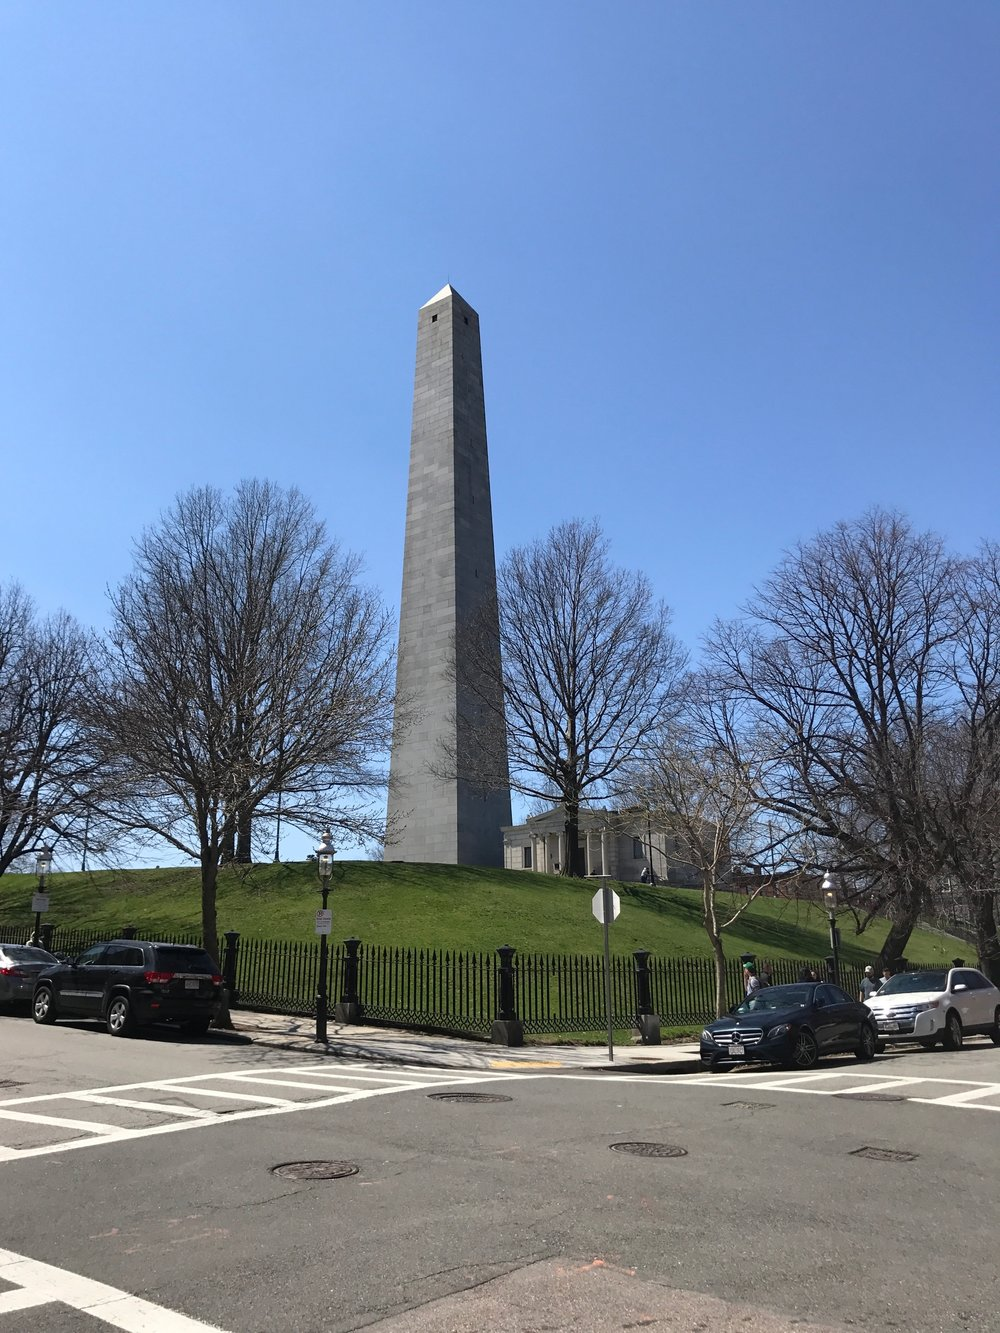 Bunker Hill Monument from South point of view